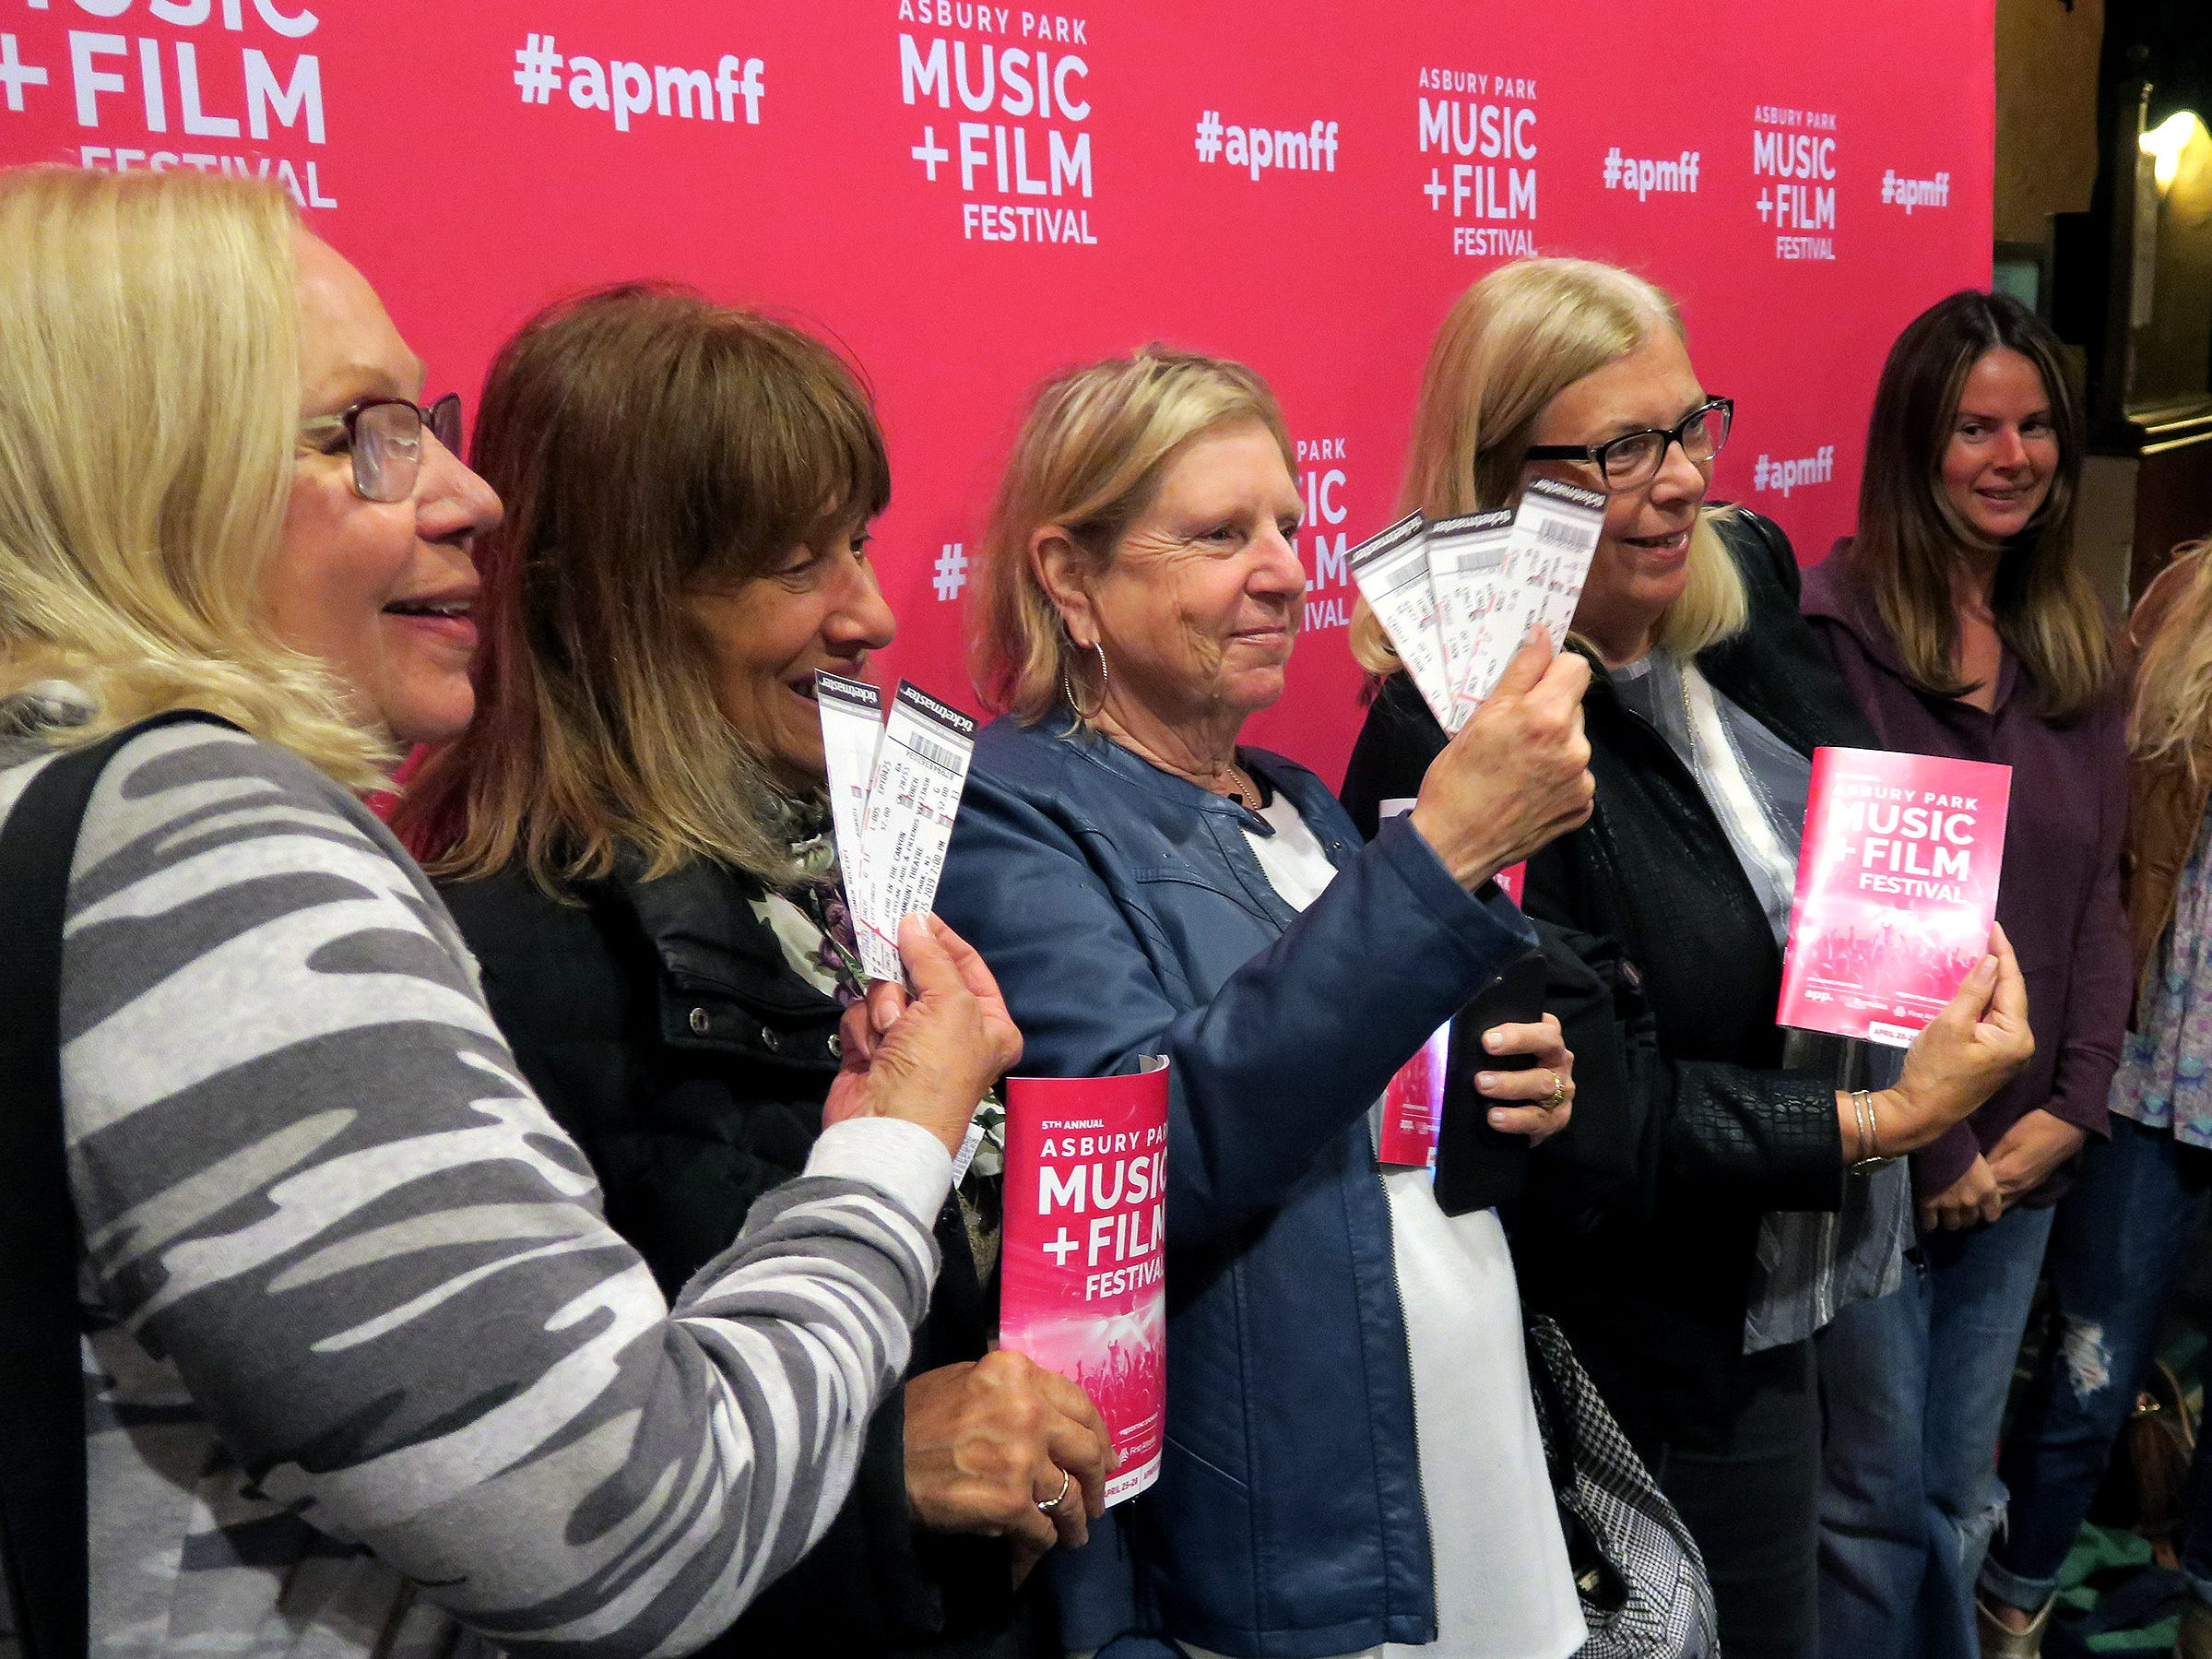 """Women display their tickets and programs as they arrive at the Paramount Theatre Thursday night, April 25, 2019, for a screening of the film """"Echo In The Canyon""""  on the opening night of the Asbury Park Music + Film Festival."""